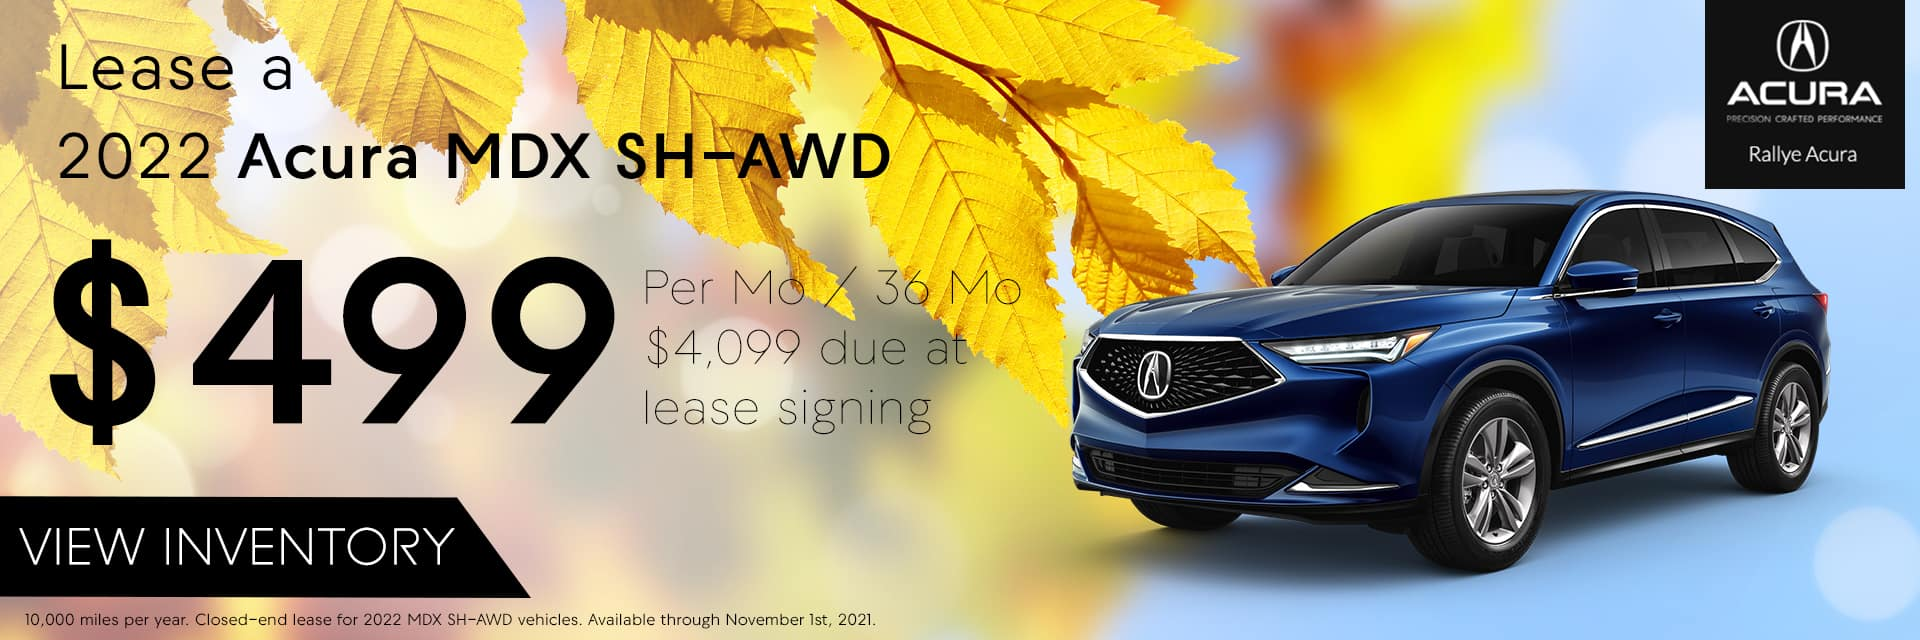 Lease a 2022 Acura MDX SH-AWD for $499 /mo for 36 /mos with $4,099 due at signing